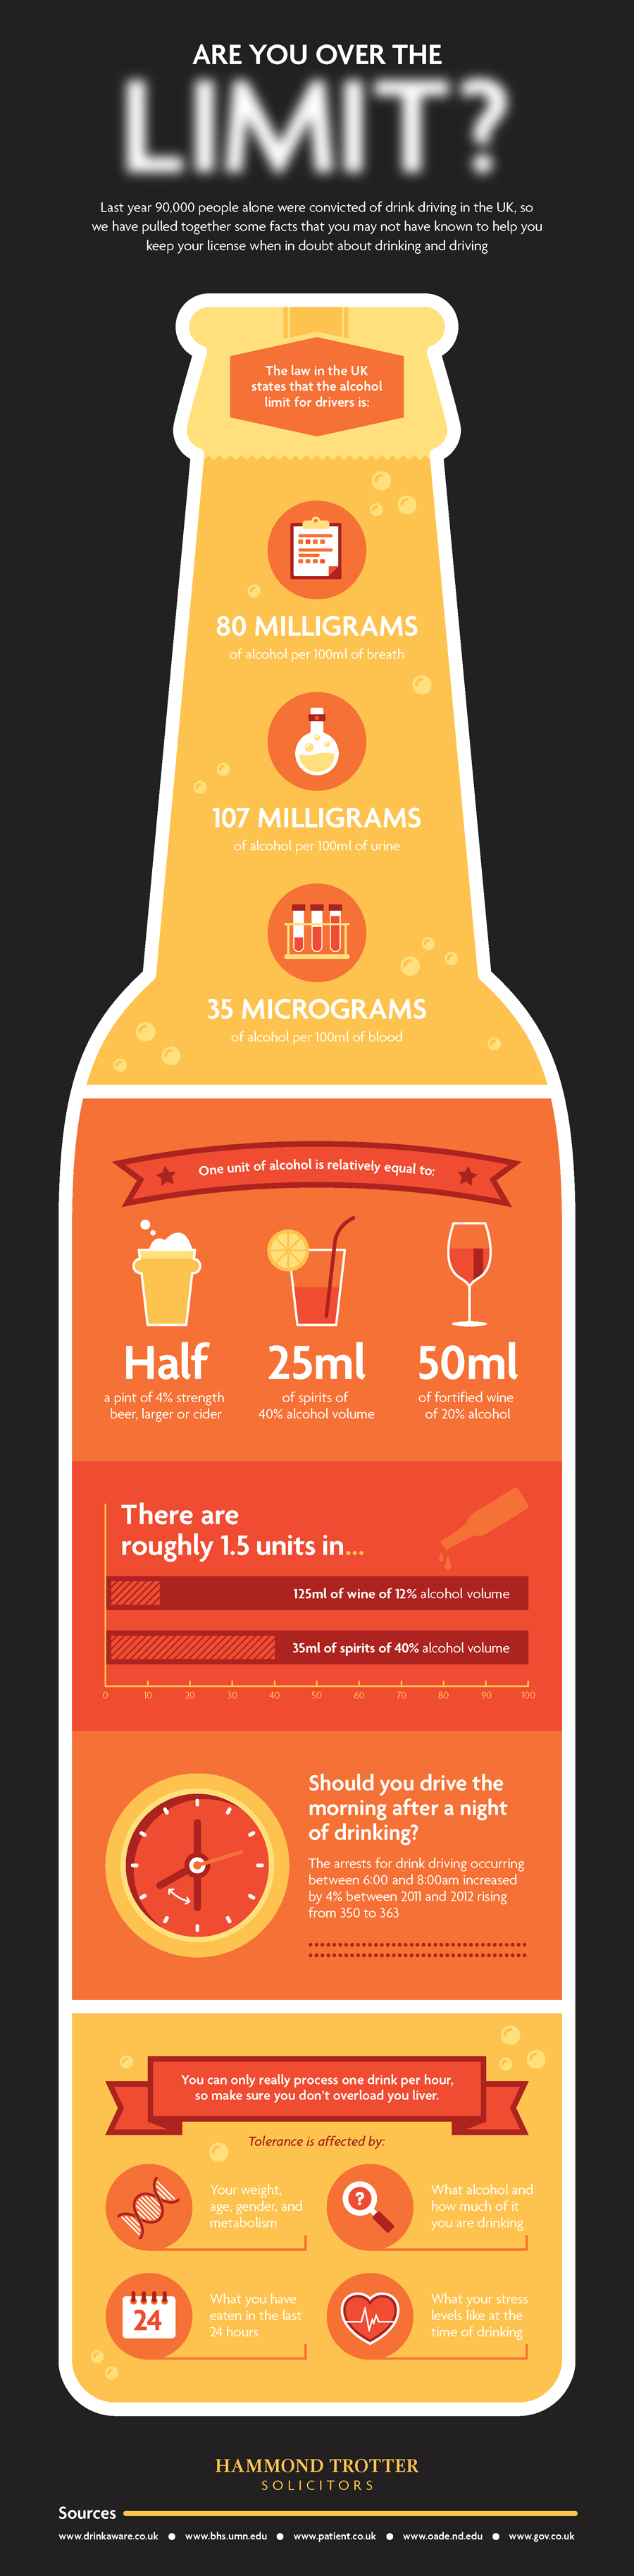 Infographic: Are You Over The Limit? #infographic